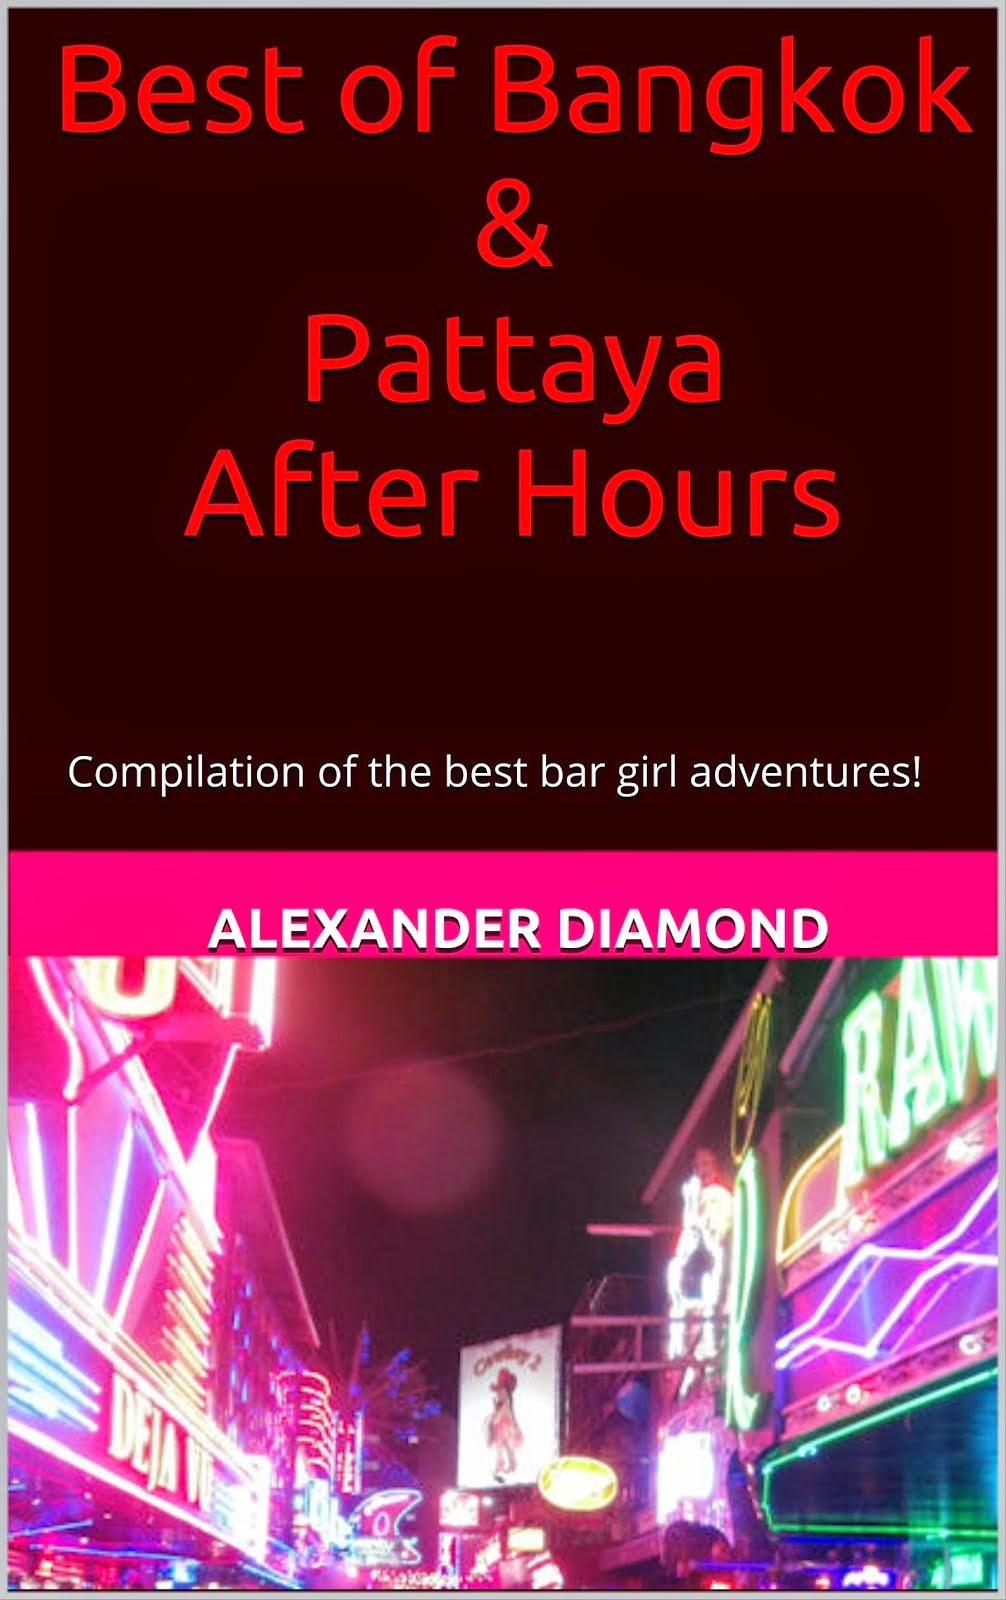 Best of Bangkok & Pattaya After Hours